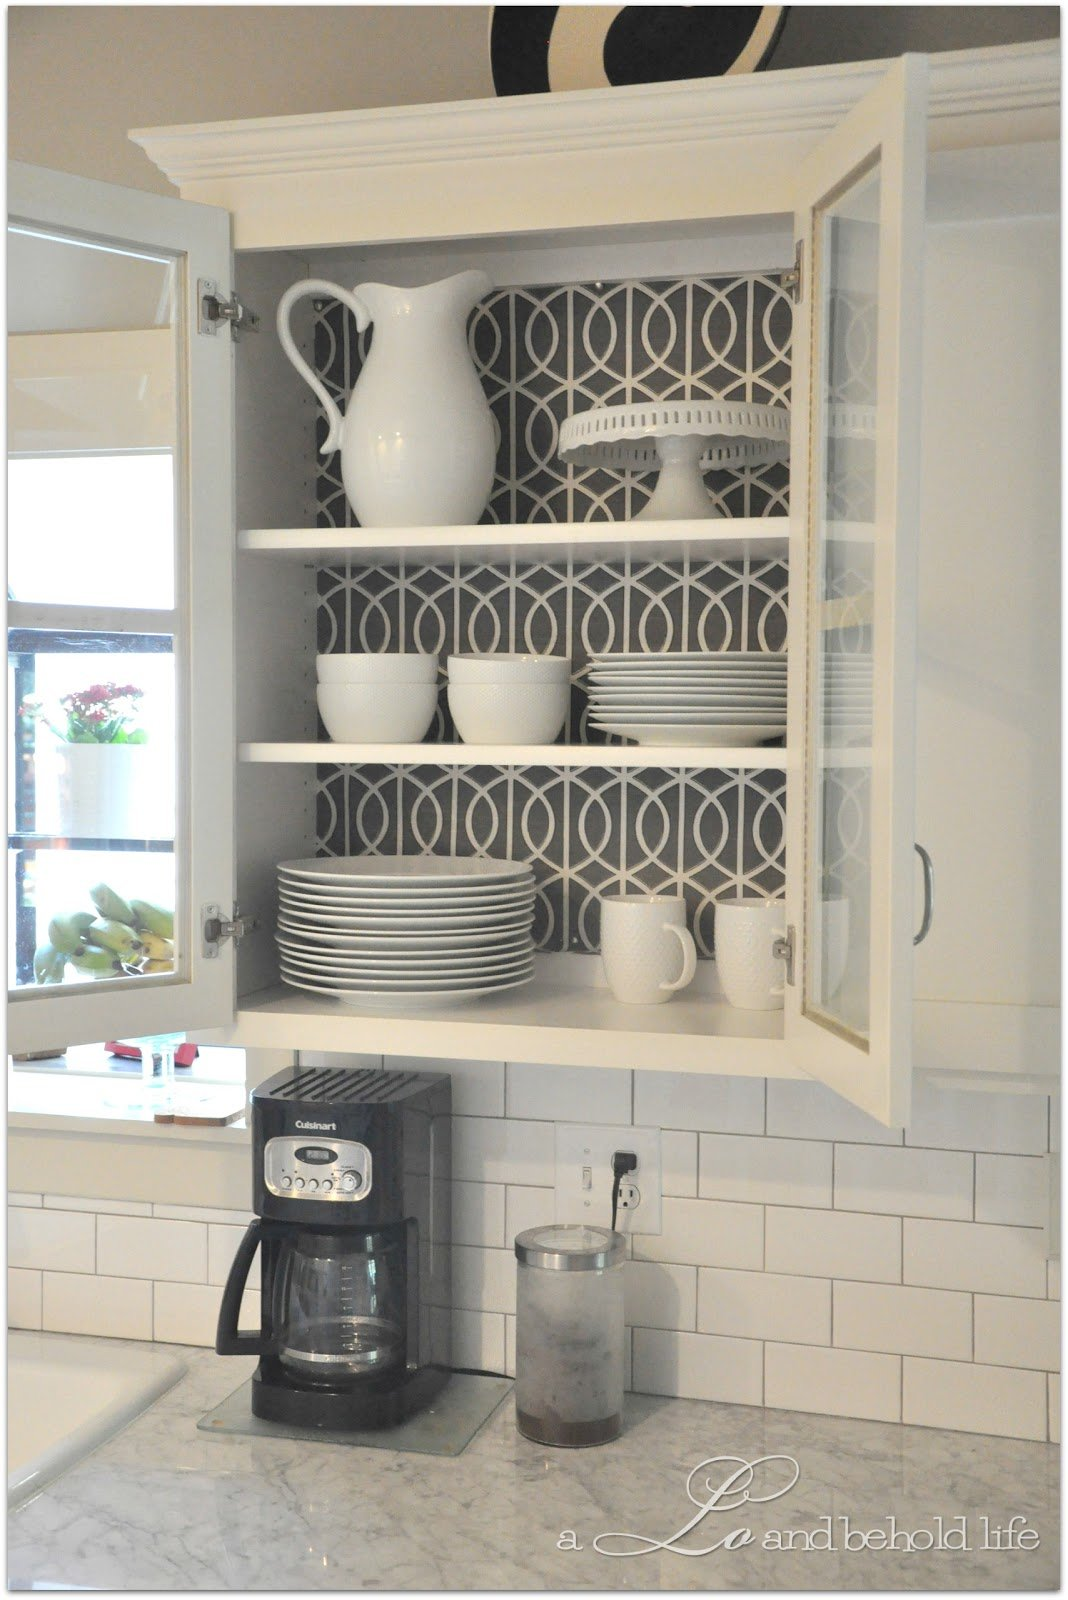 30 creative wallpaper uses and project ideas for Artistic kitchen cabinets